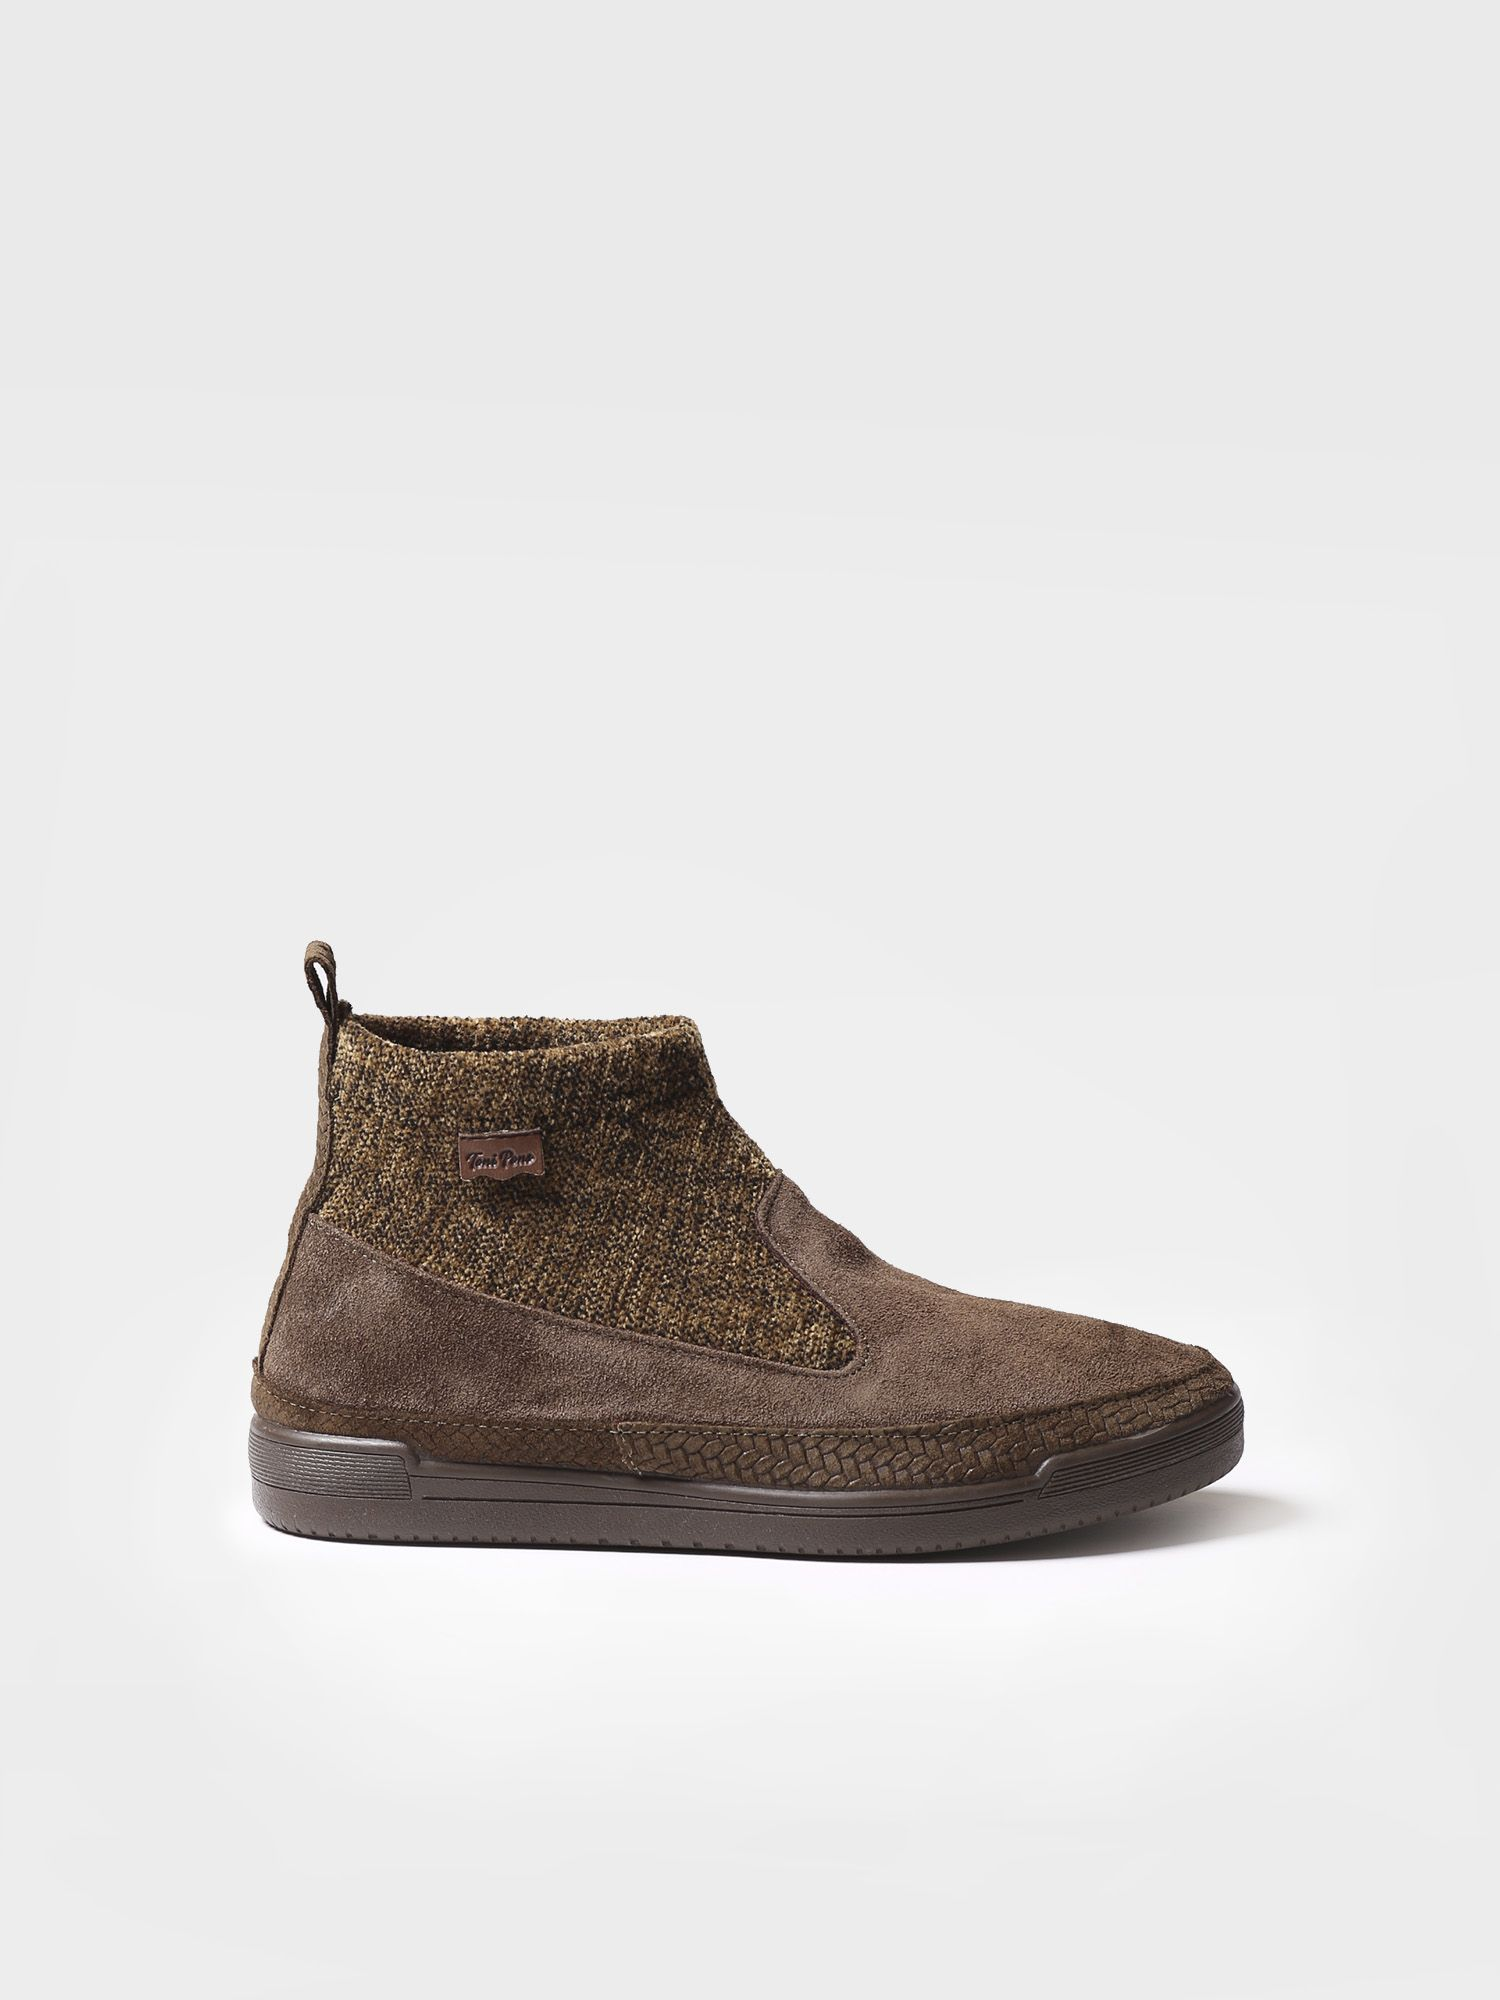 Ankle boot for women made of suede - GIGI-ST